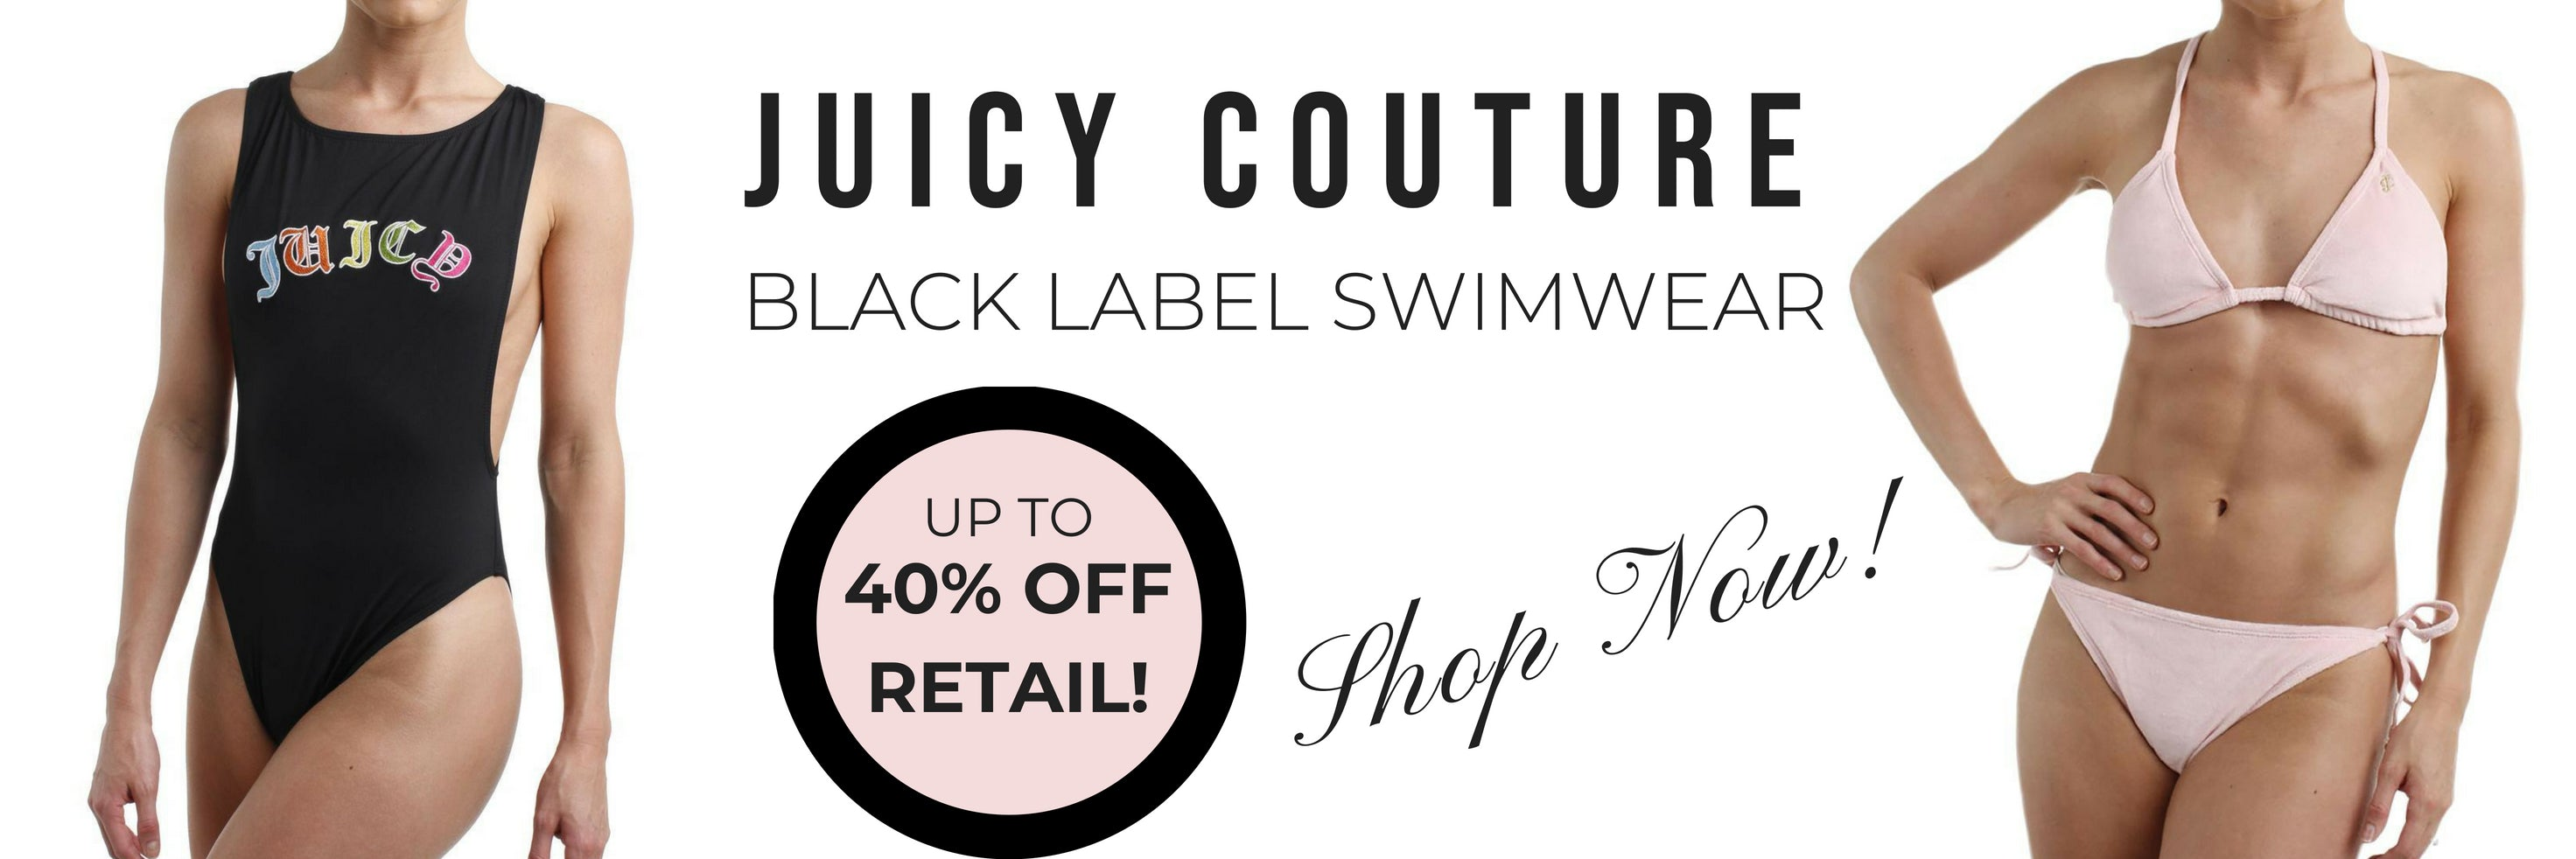 Juicy Couture Swim